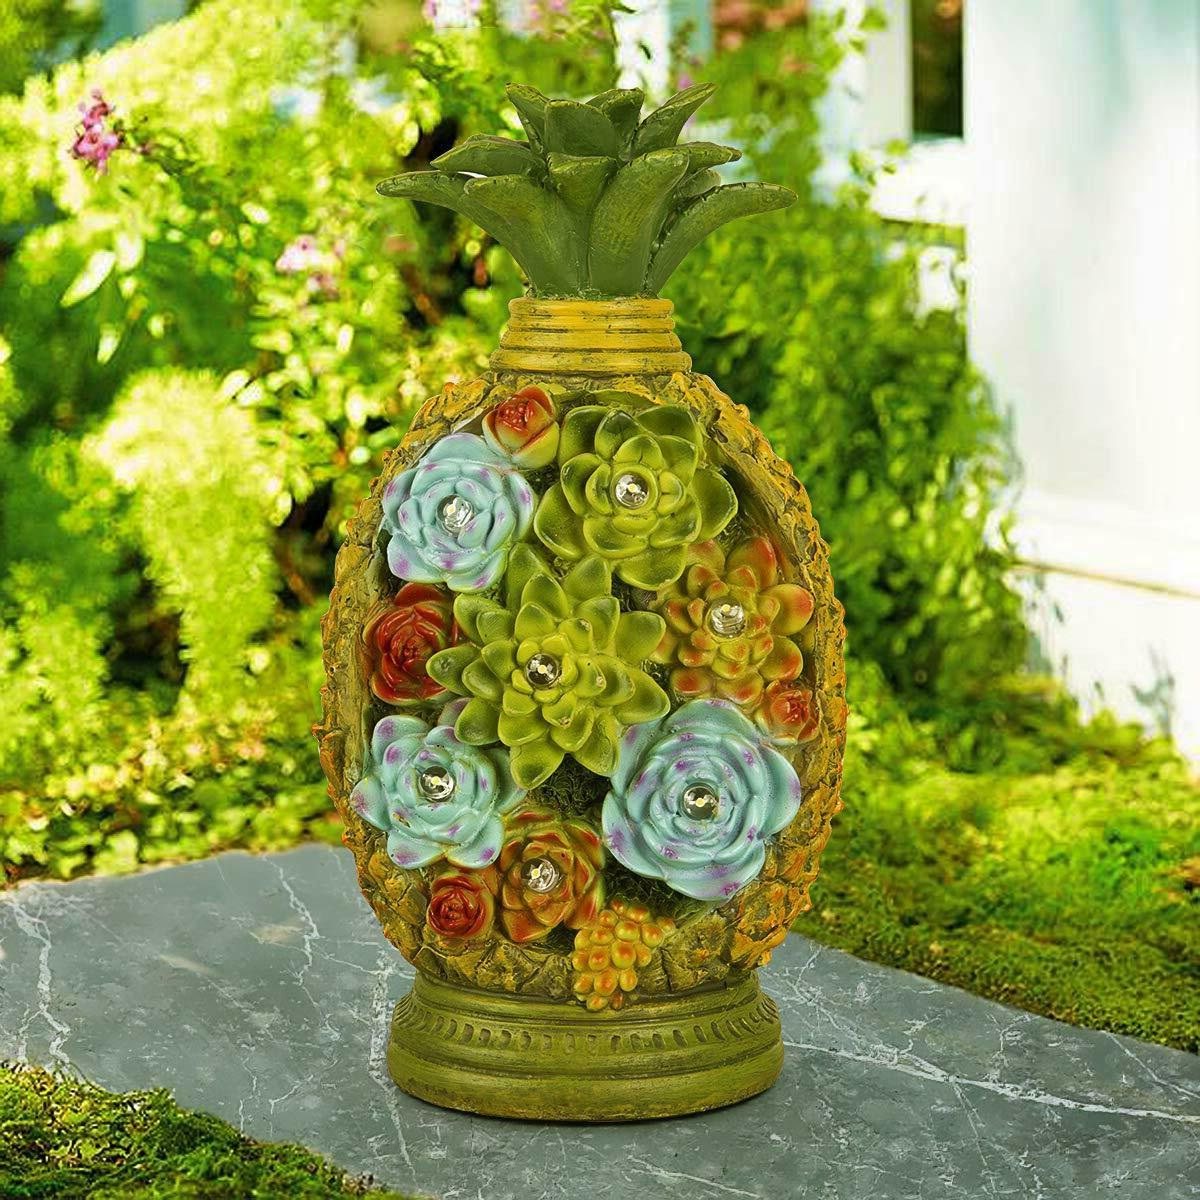 GIGALUMI Statues Solar Light Resin Outdoor